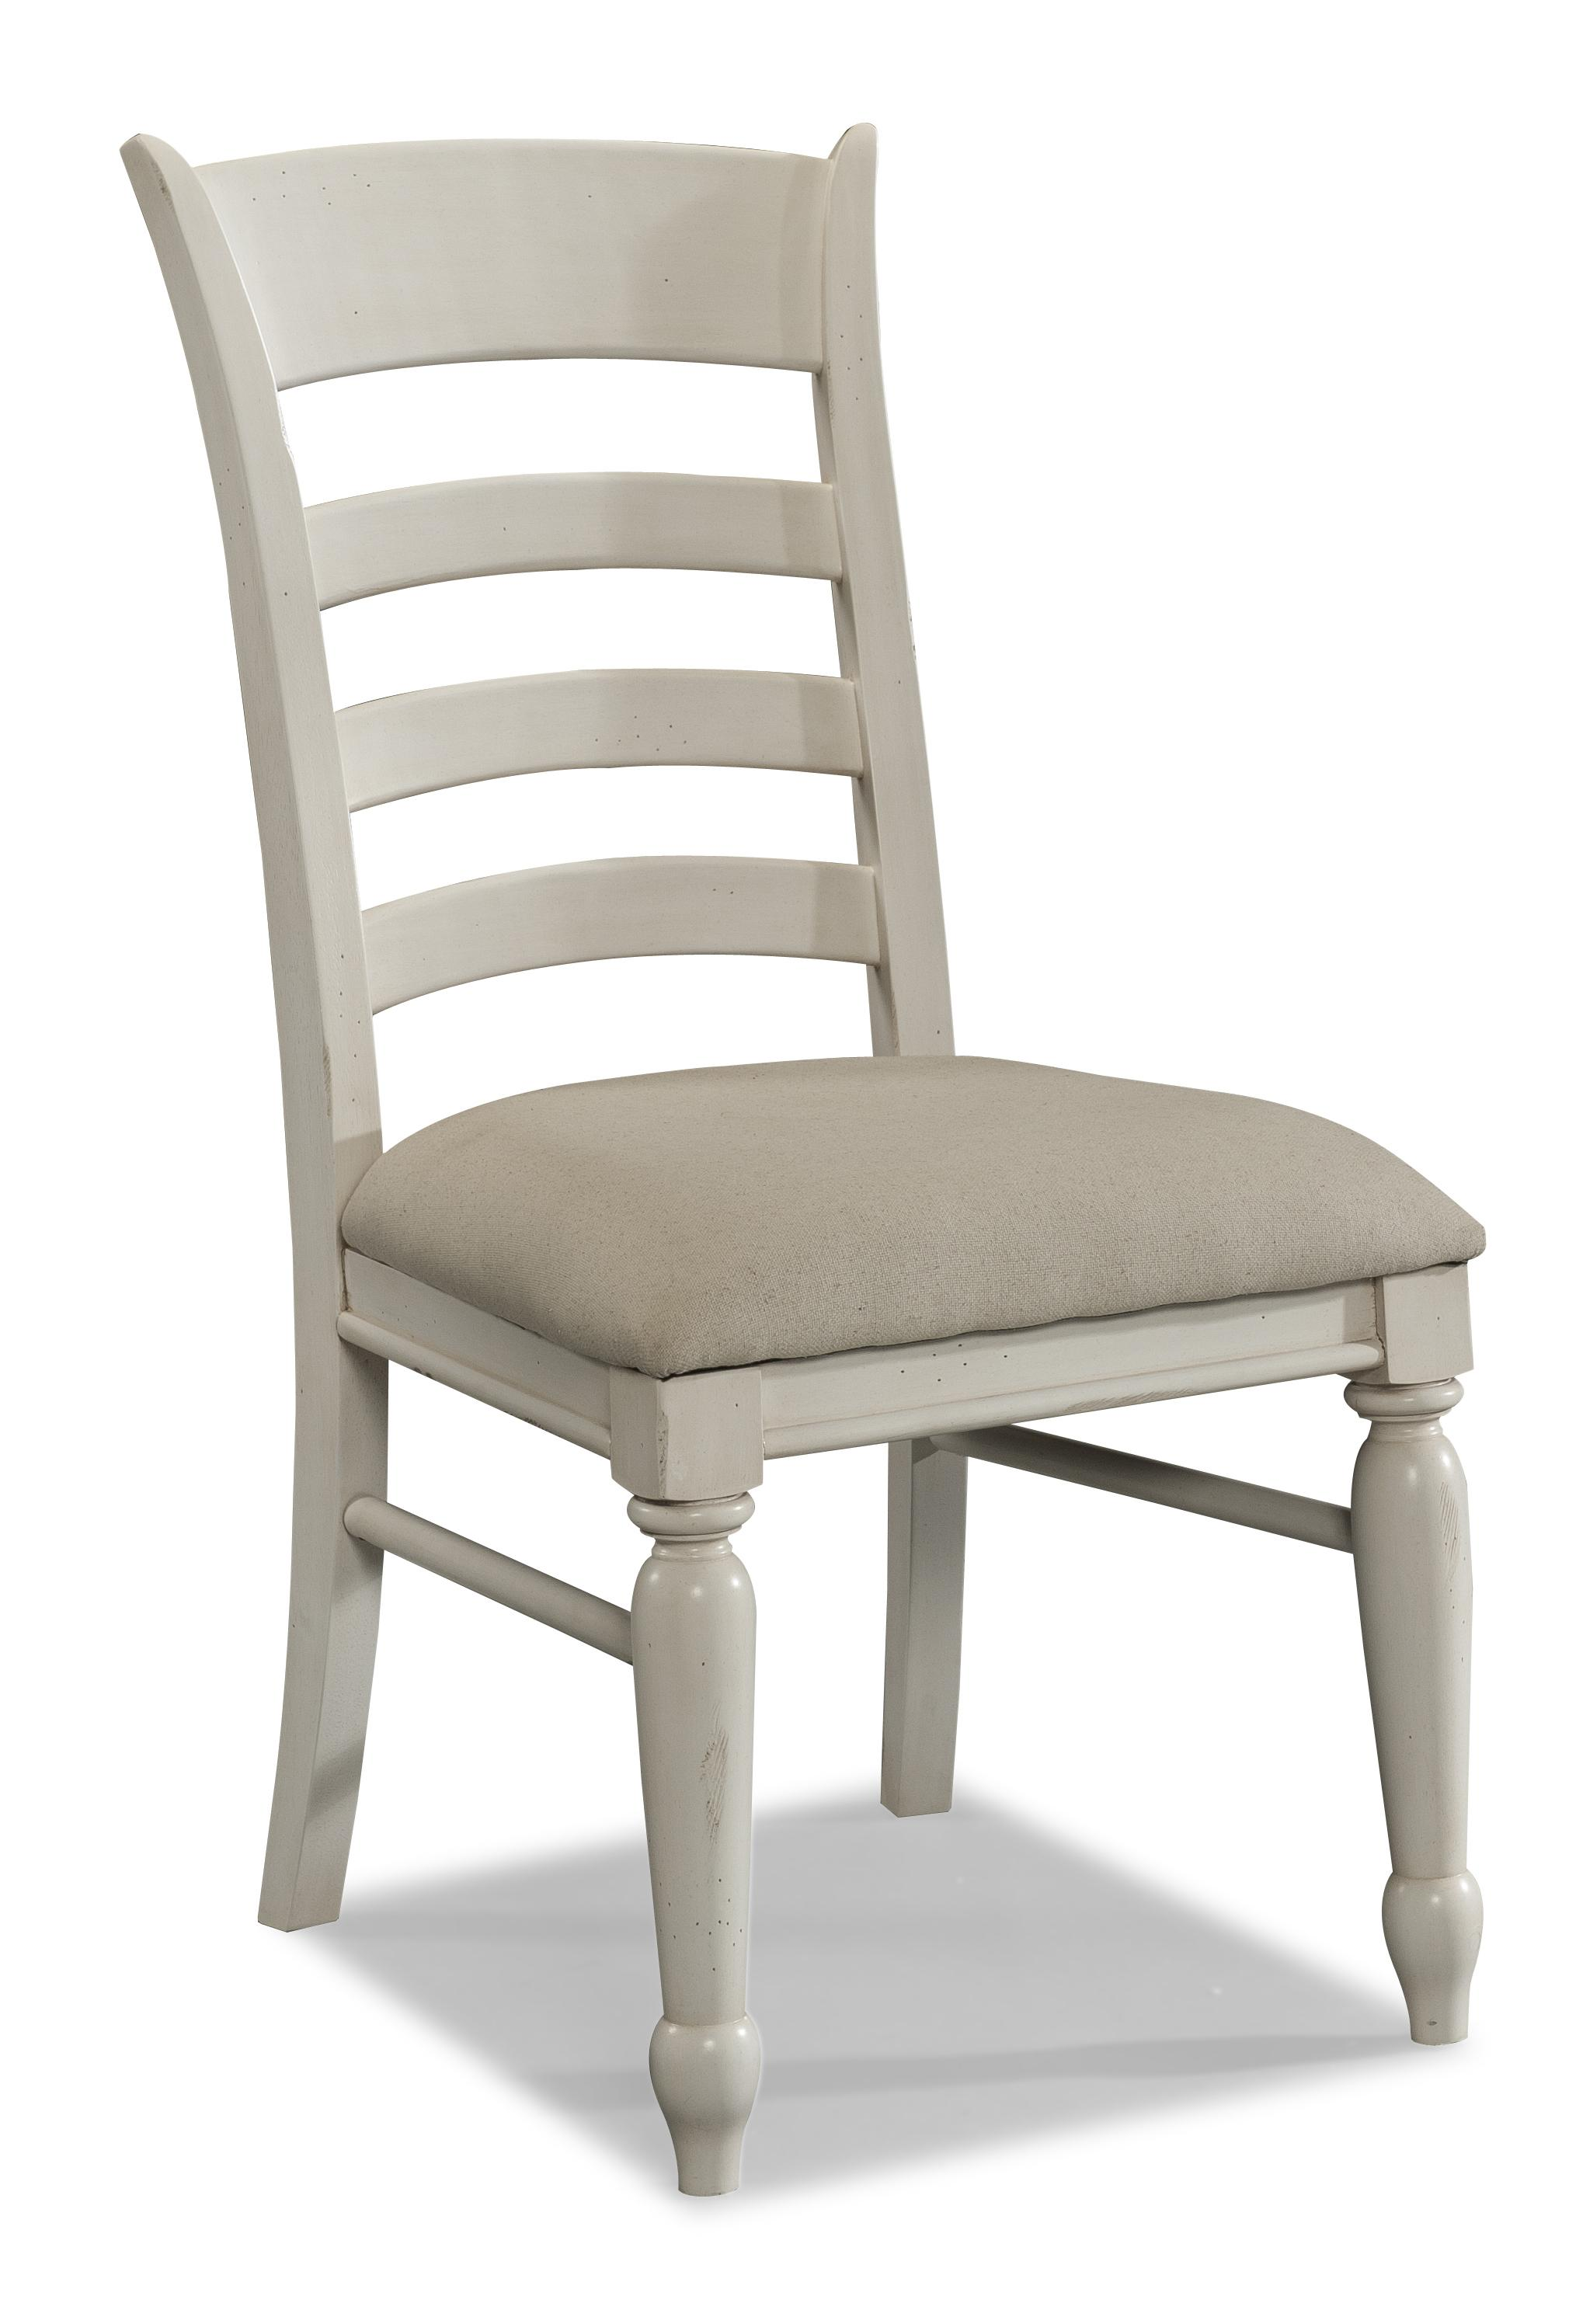 White Ladder Back Chair Carolina Preserves By Klaussner Sea Breeze White Ladder